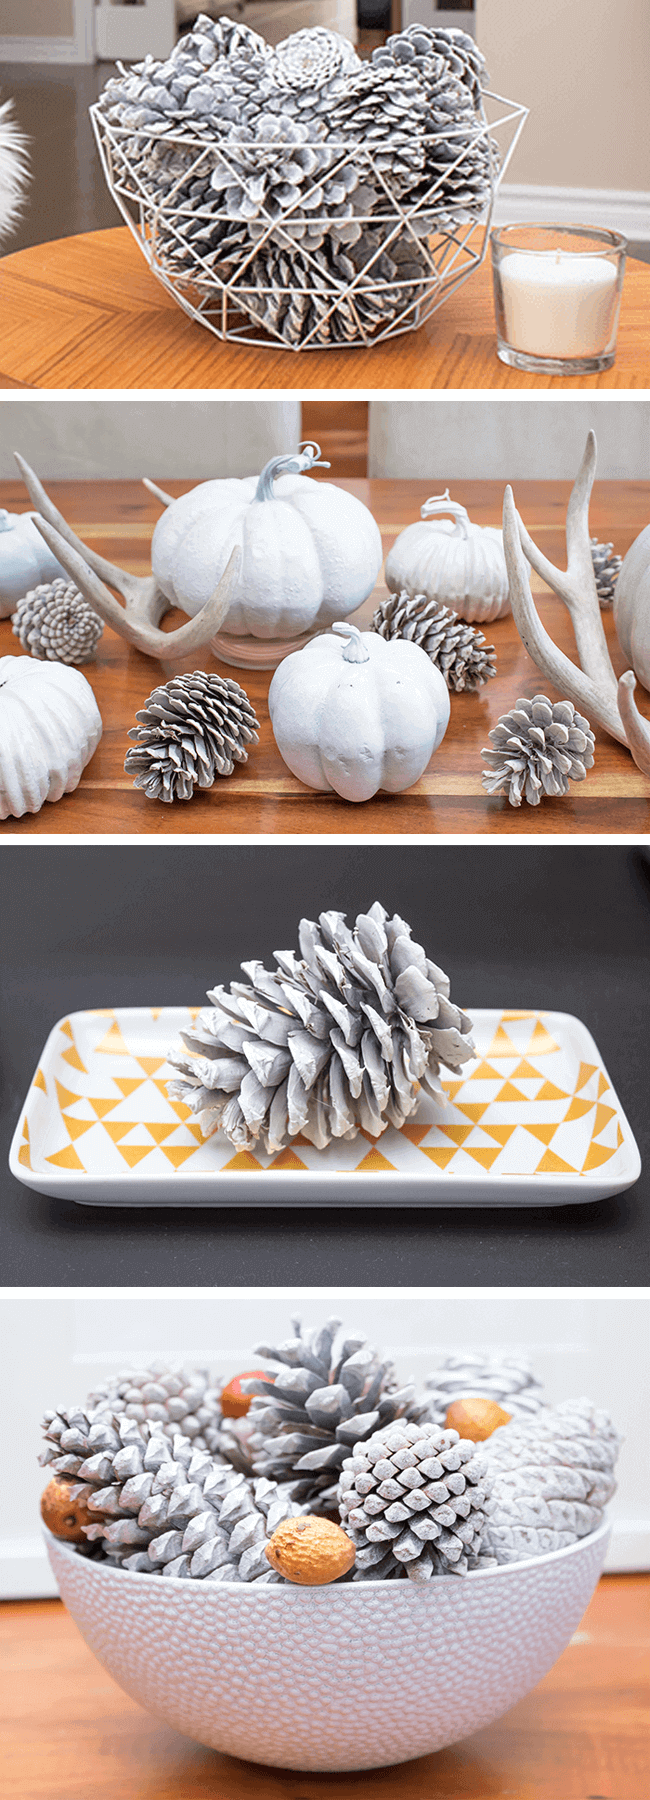 Simple White Pinecone Decor Ideas | Stylish pinecone decor ideas with a Scandi-boho vibe | Fresh farmhouse decorating on a budget | DIY | Home Decorating